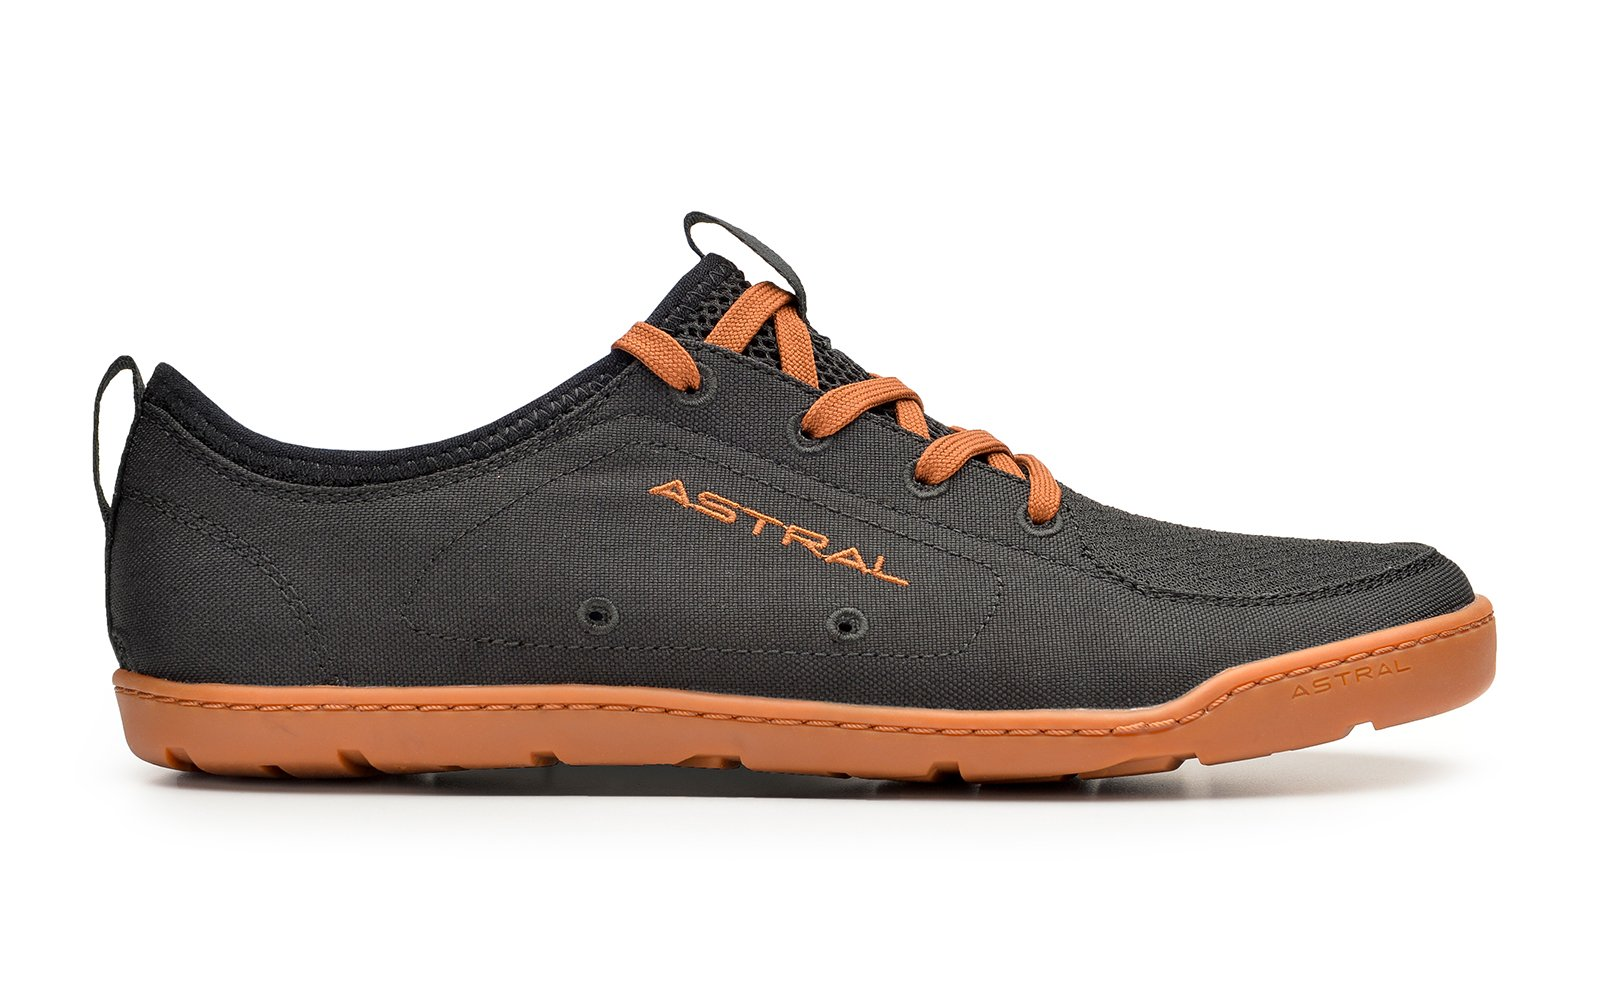 Astral Loyak Men's Water Shoes in Black/Brown